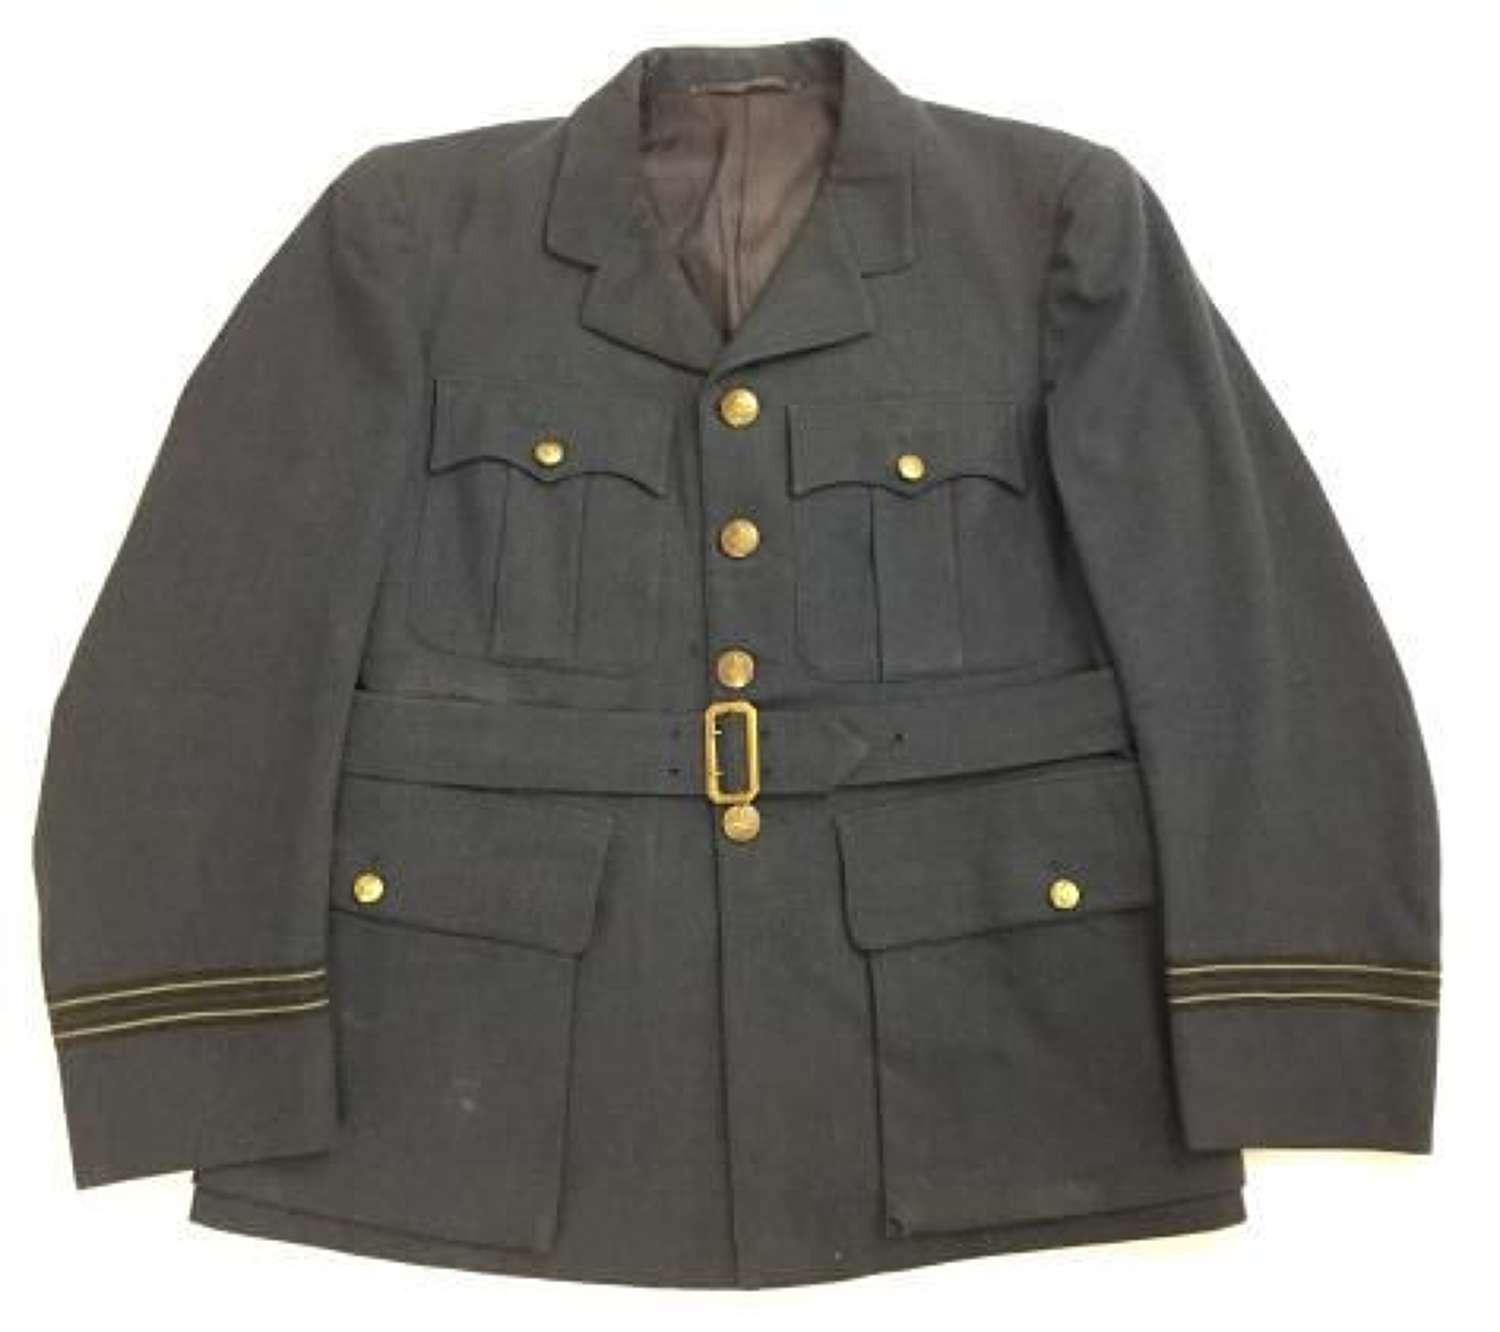 Original 1944 Dated RAF Officers Service Dress Tunic - Large Size!